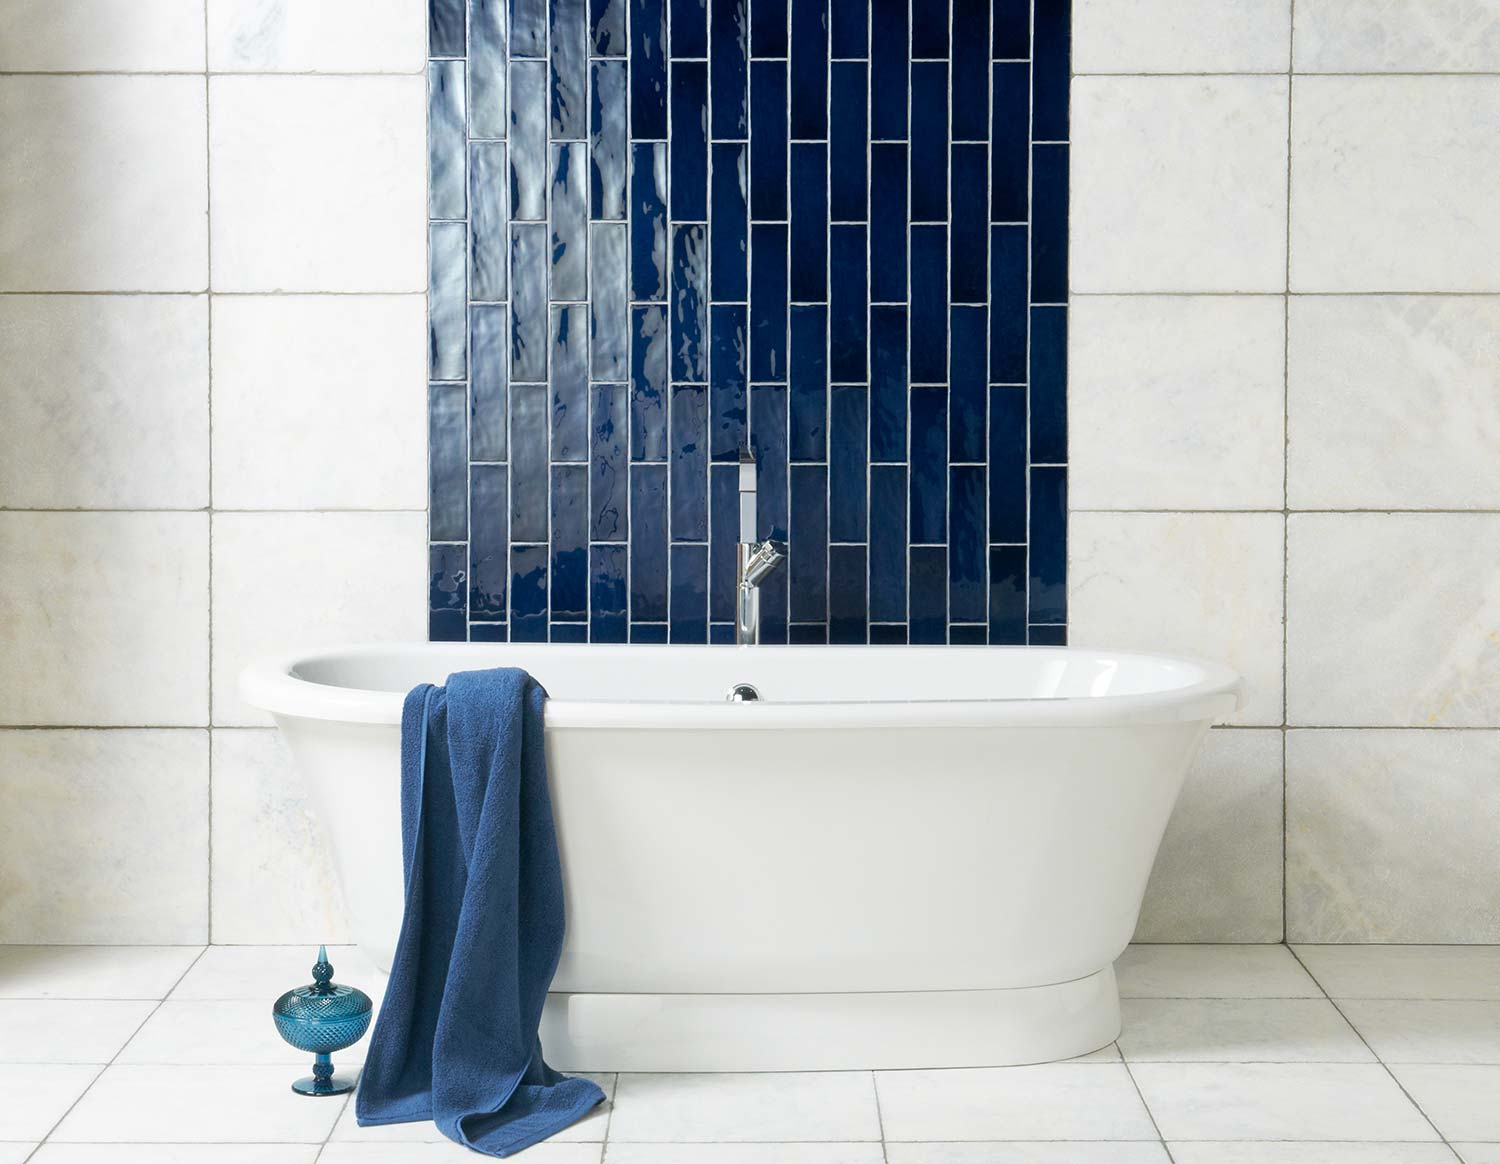 Feel Inspired By These Bathroom Tile Trends For 2019 14 Bathroom Tile Trends Feel Inspired By These Bathroom Tile Trends For 2019 Feel Inspired By These Bathroom Tile Trends For 2019 14